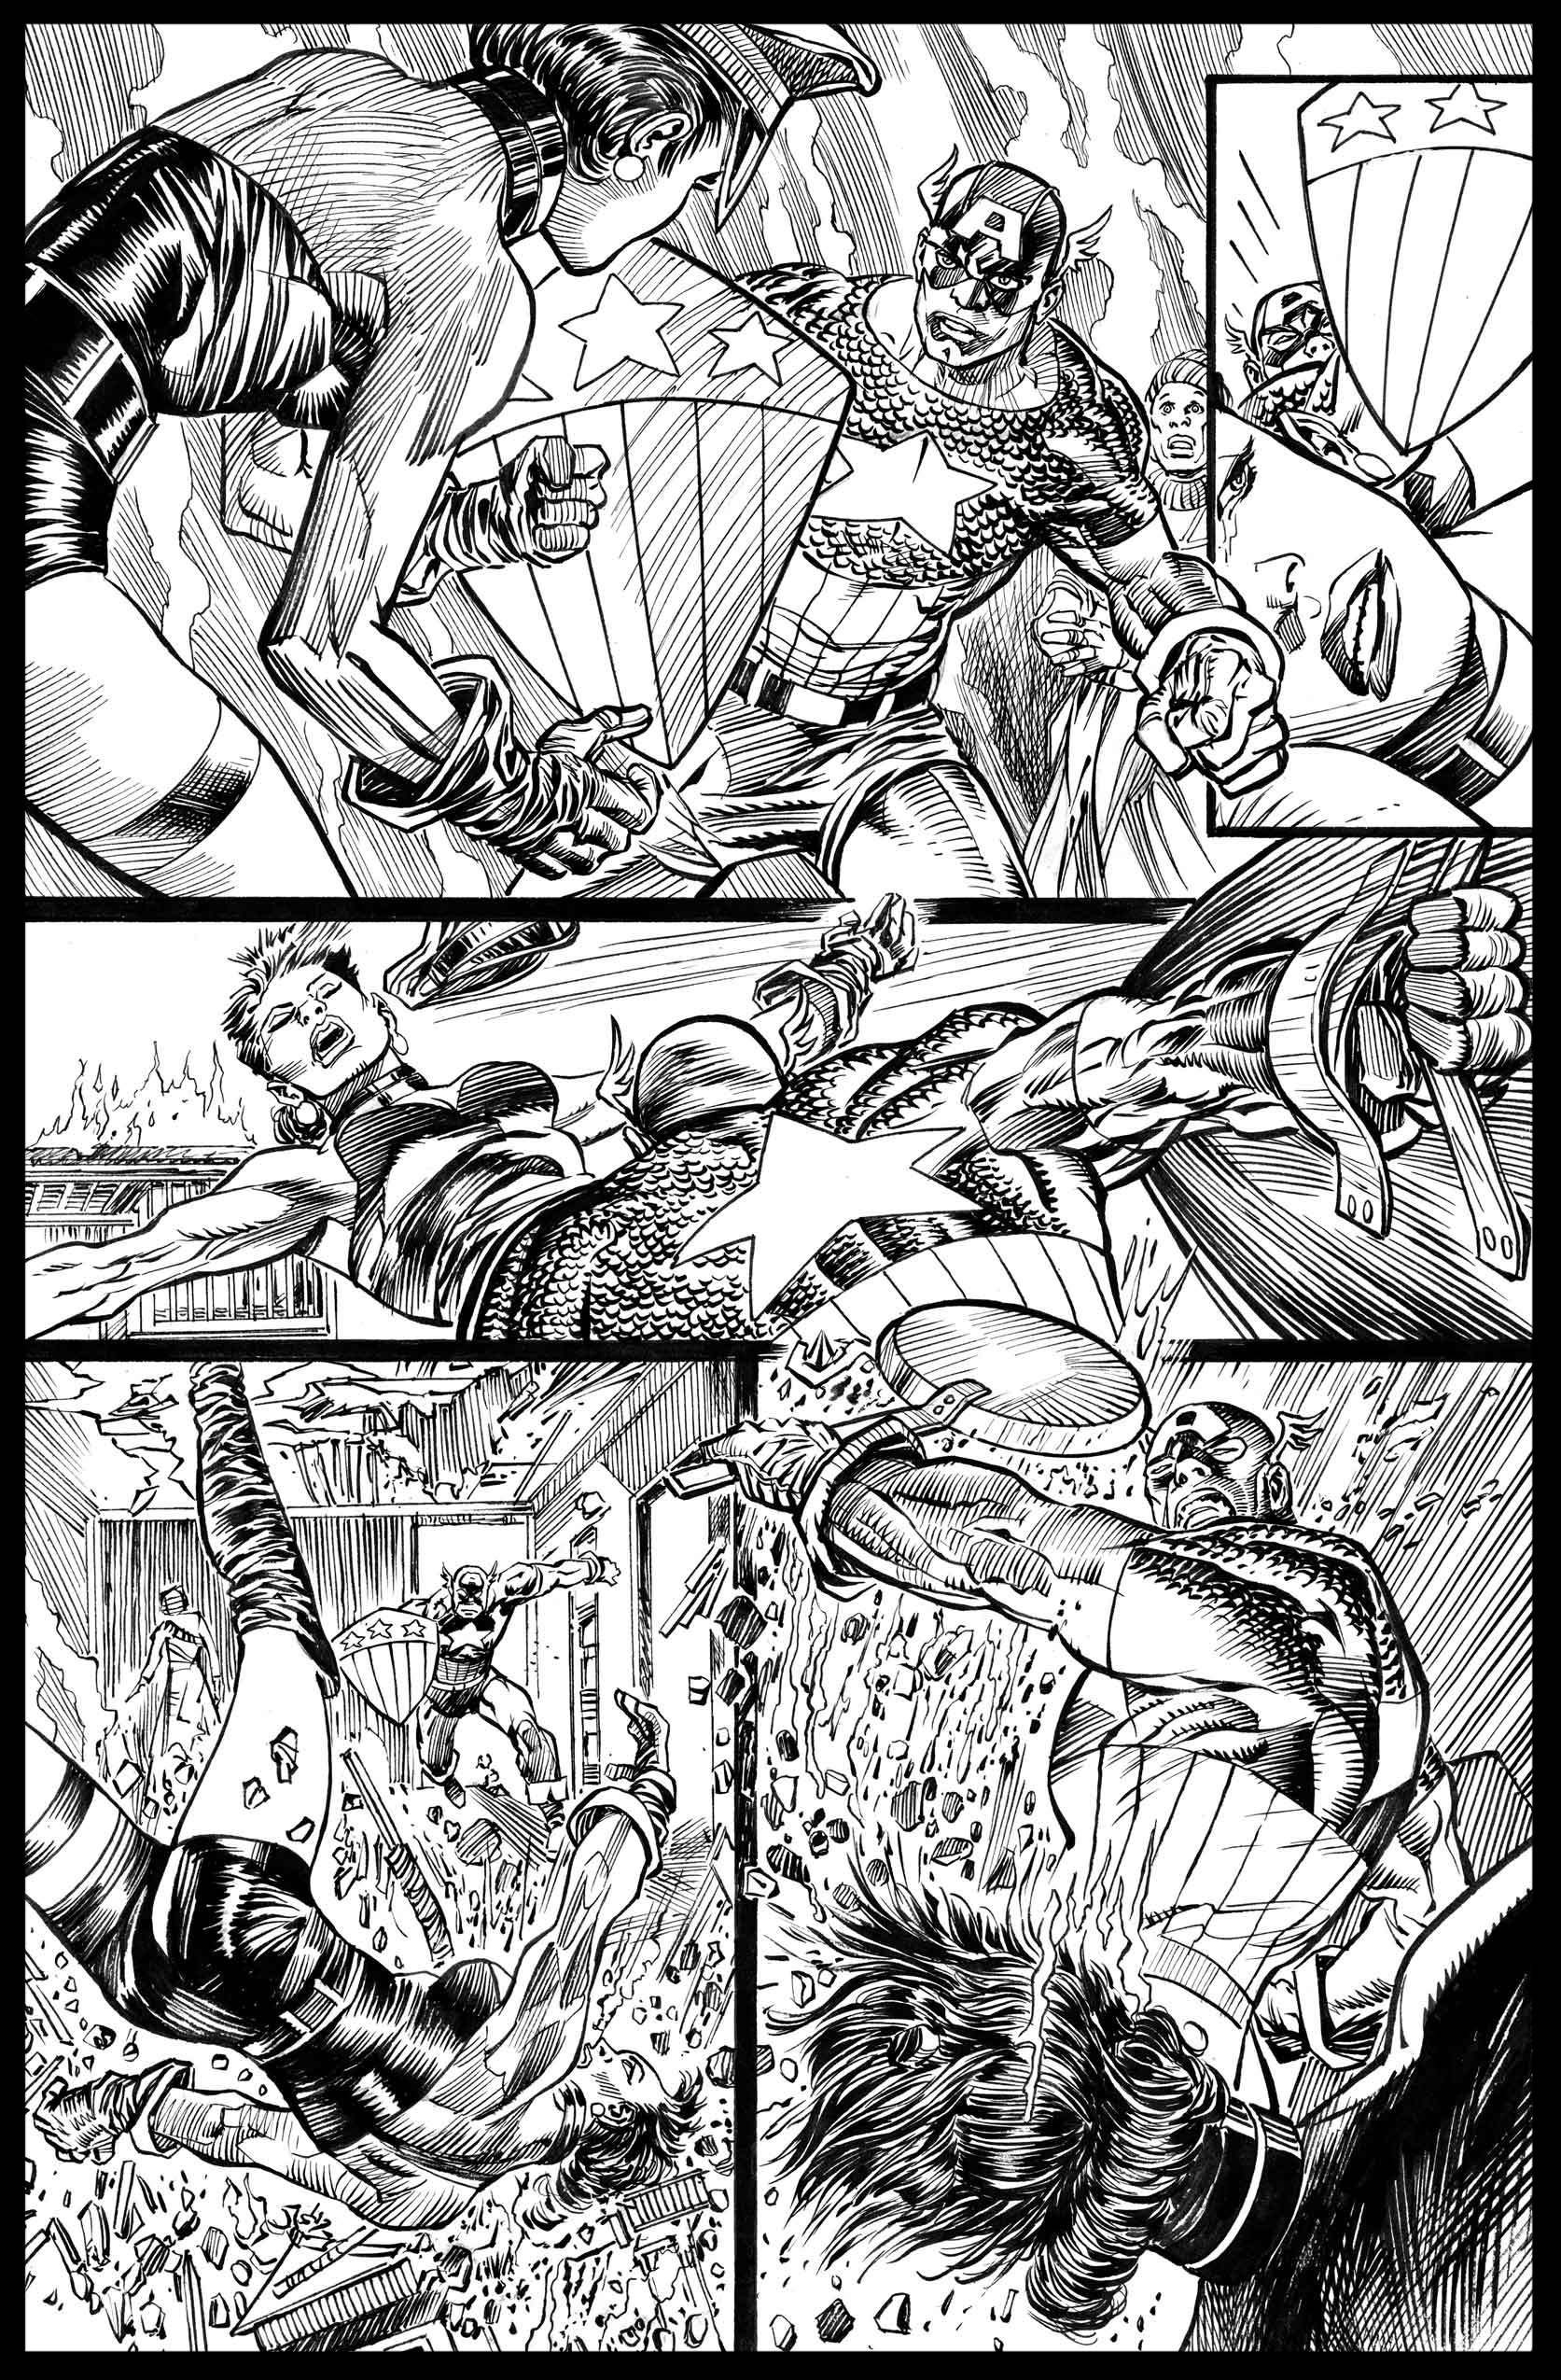 Flags of Our Fathers #3 - Page 12 - Pencils & Inks